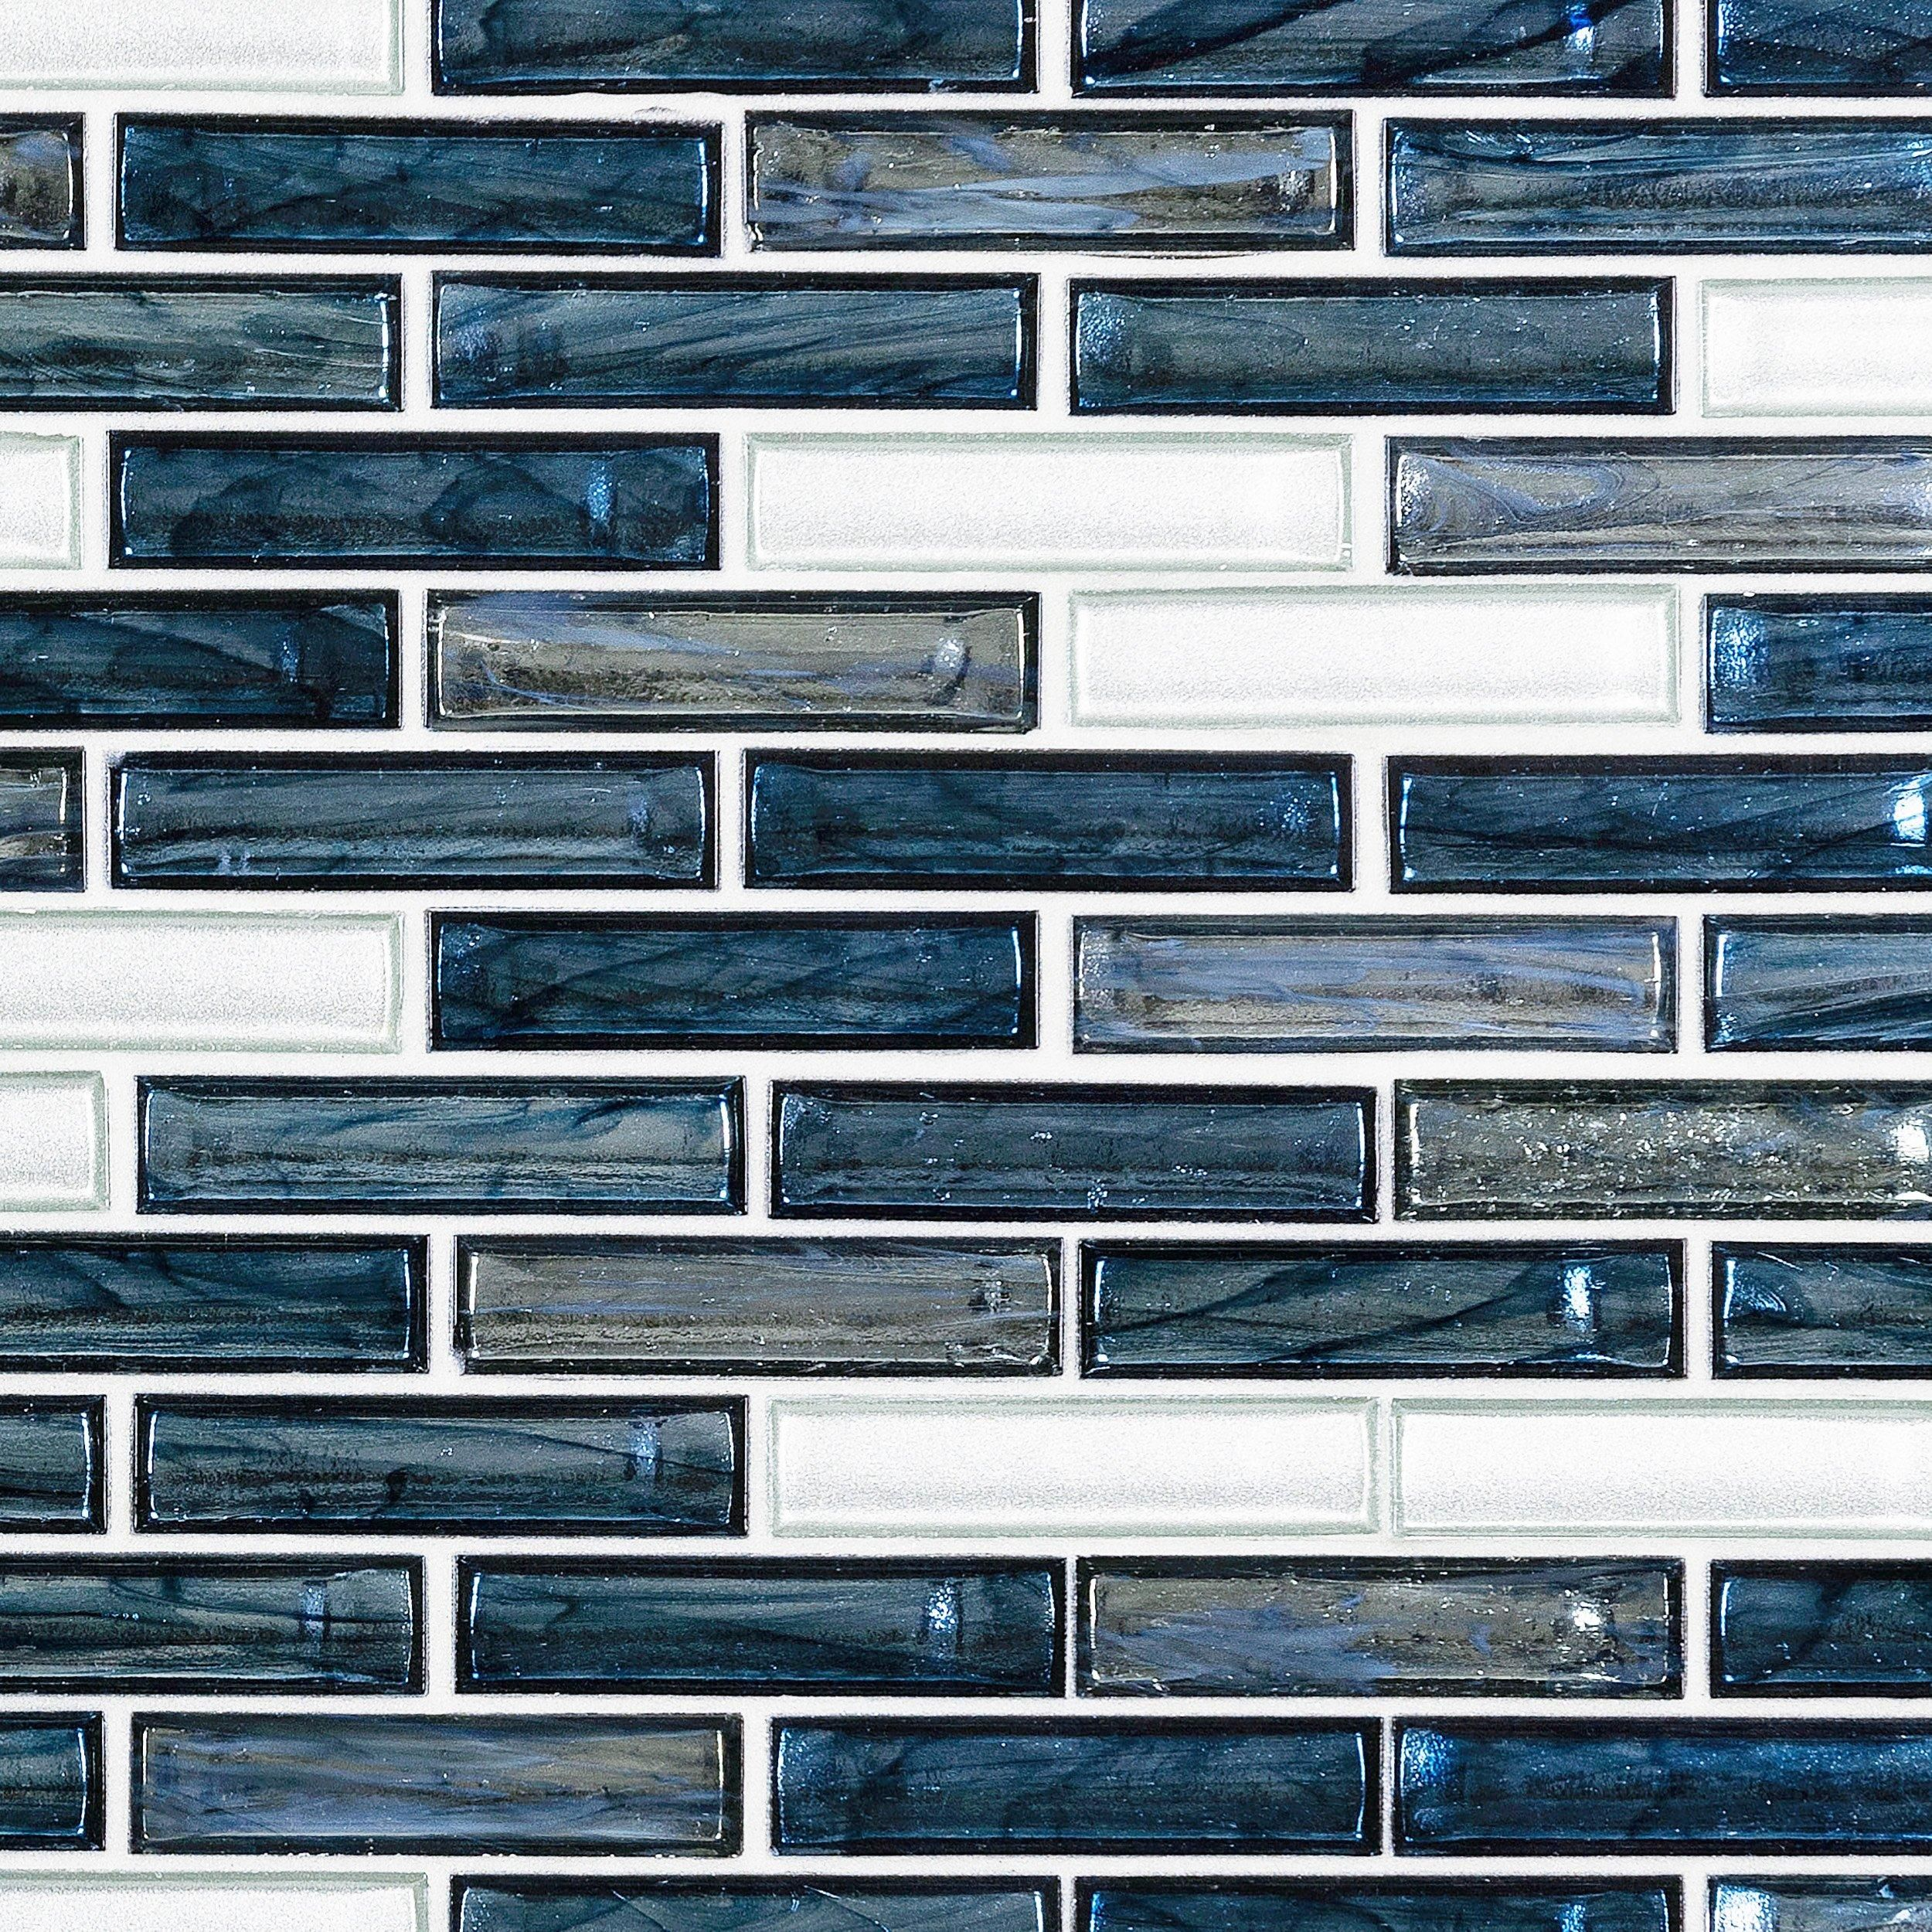 - Pin By Mark Subers On Dream House Mosaic Glass, Blue Mosaic